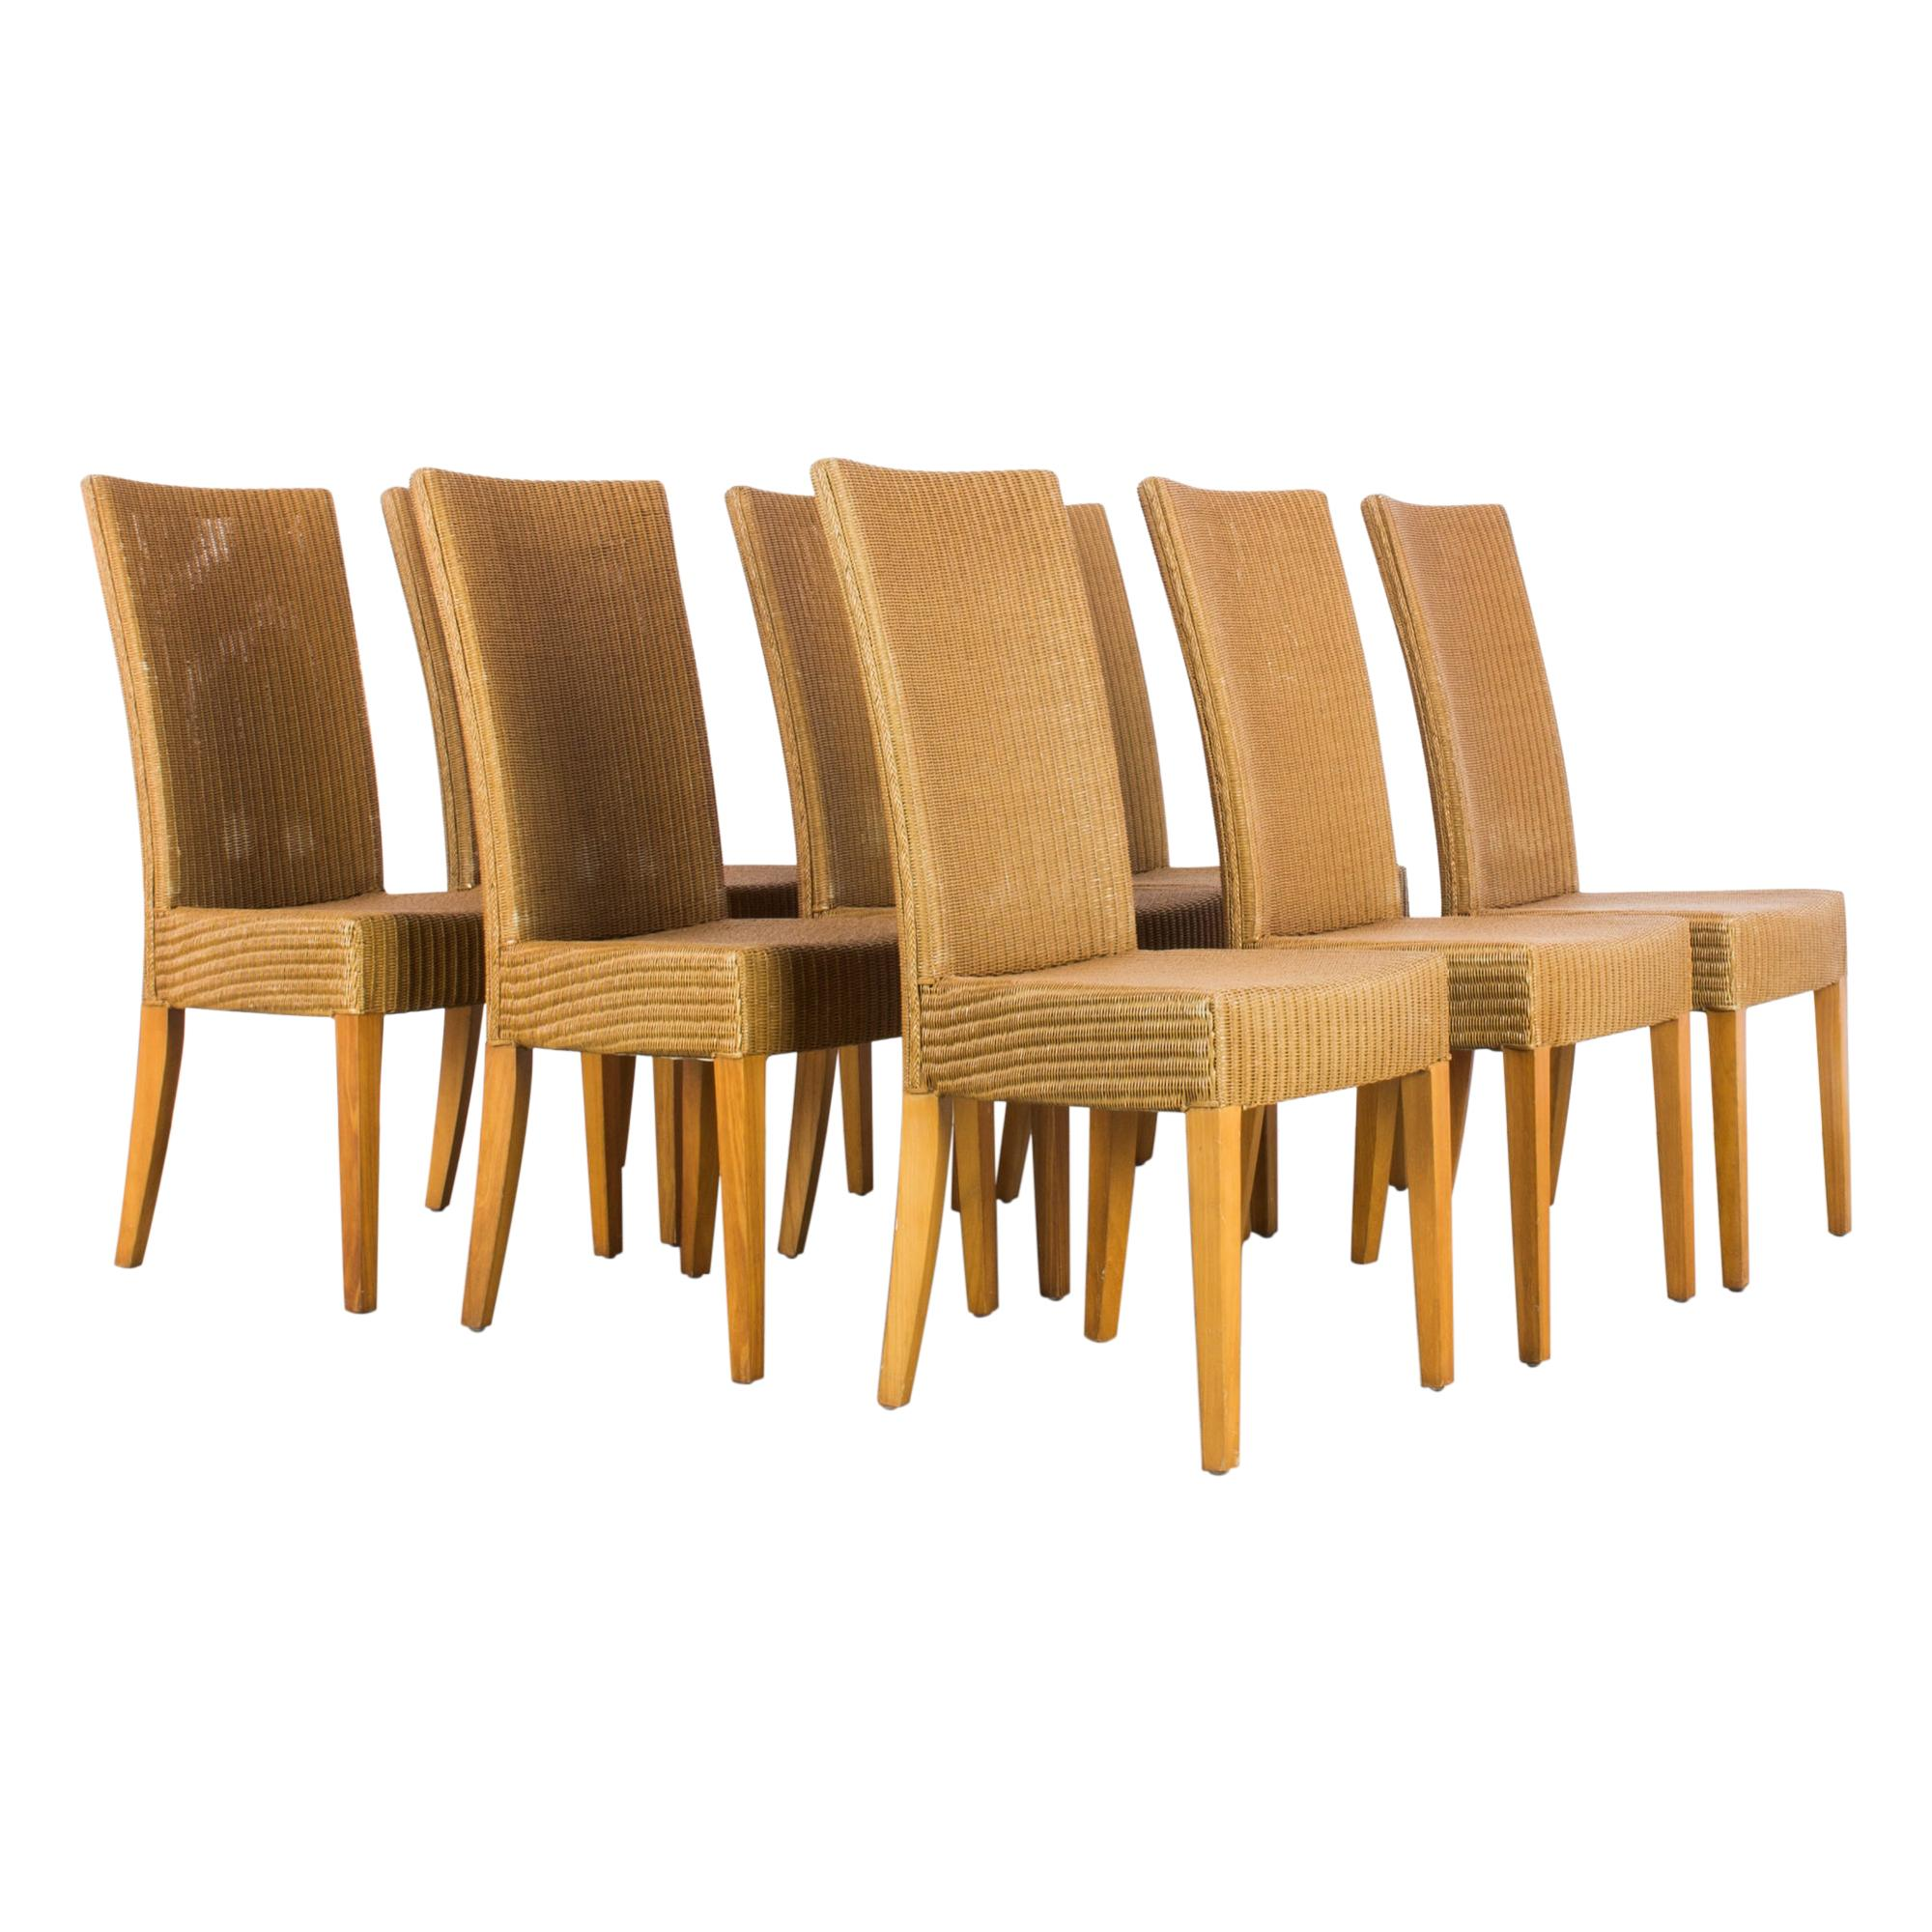 1980s Lloyd Loom Wooden Dining Chairs, Set of Eight